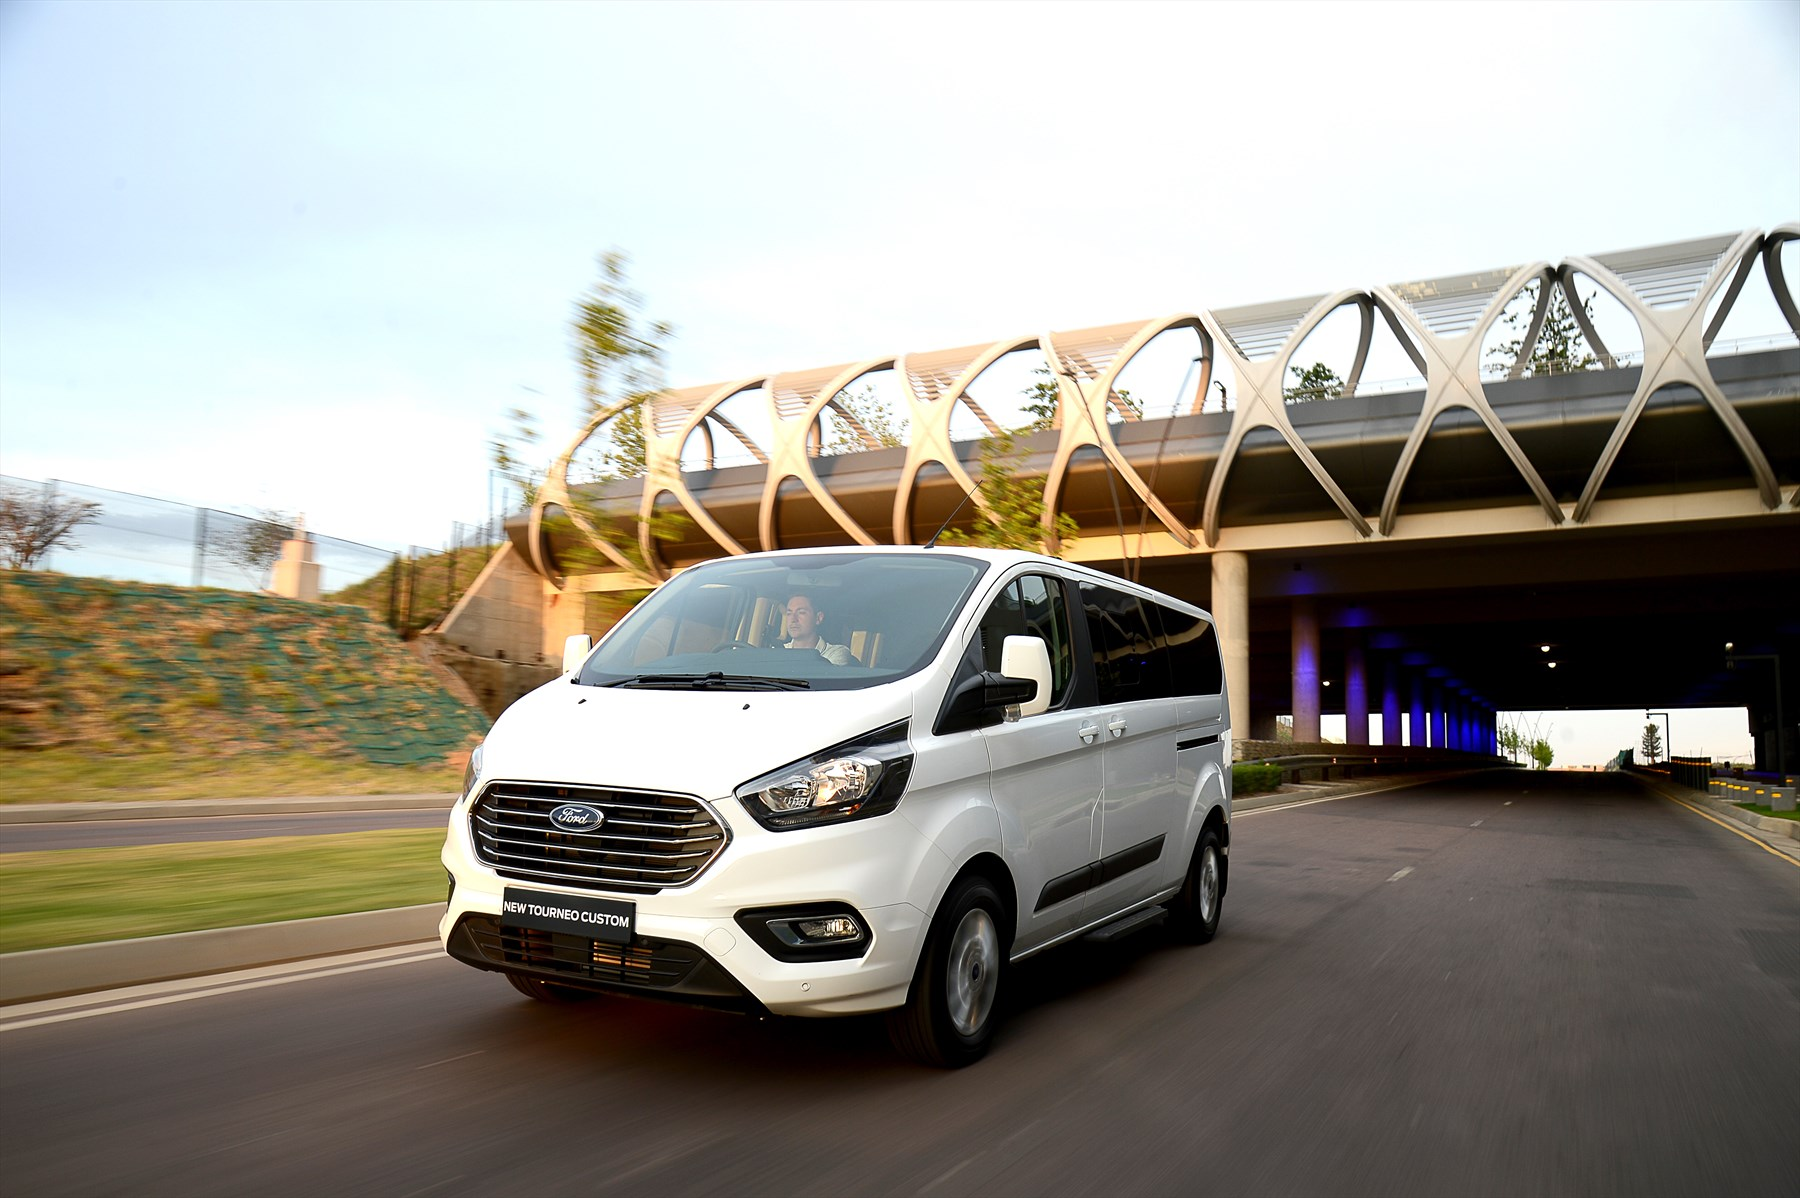 New Ford Tourneo Custom People Mover Offers The Best Seat In House For Business Or Leisure